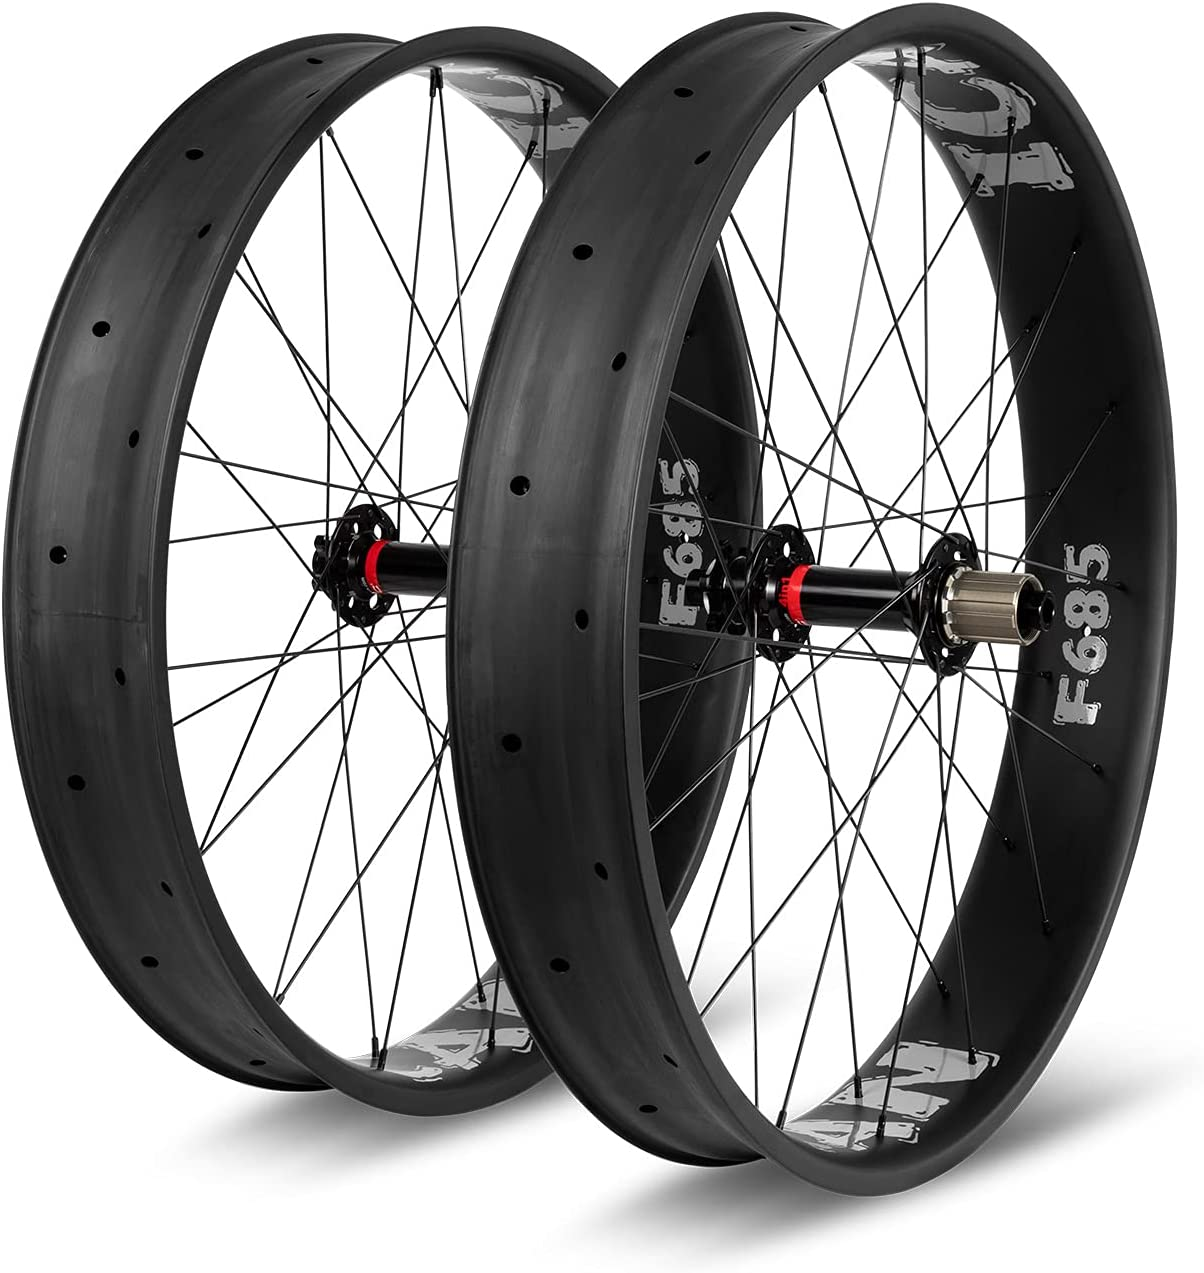 ICAN 26er Fat Bike Carbon Wheelset Snow 90mm New mail order Wheel Width Max 67% OFF Bicycle